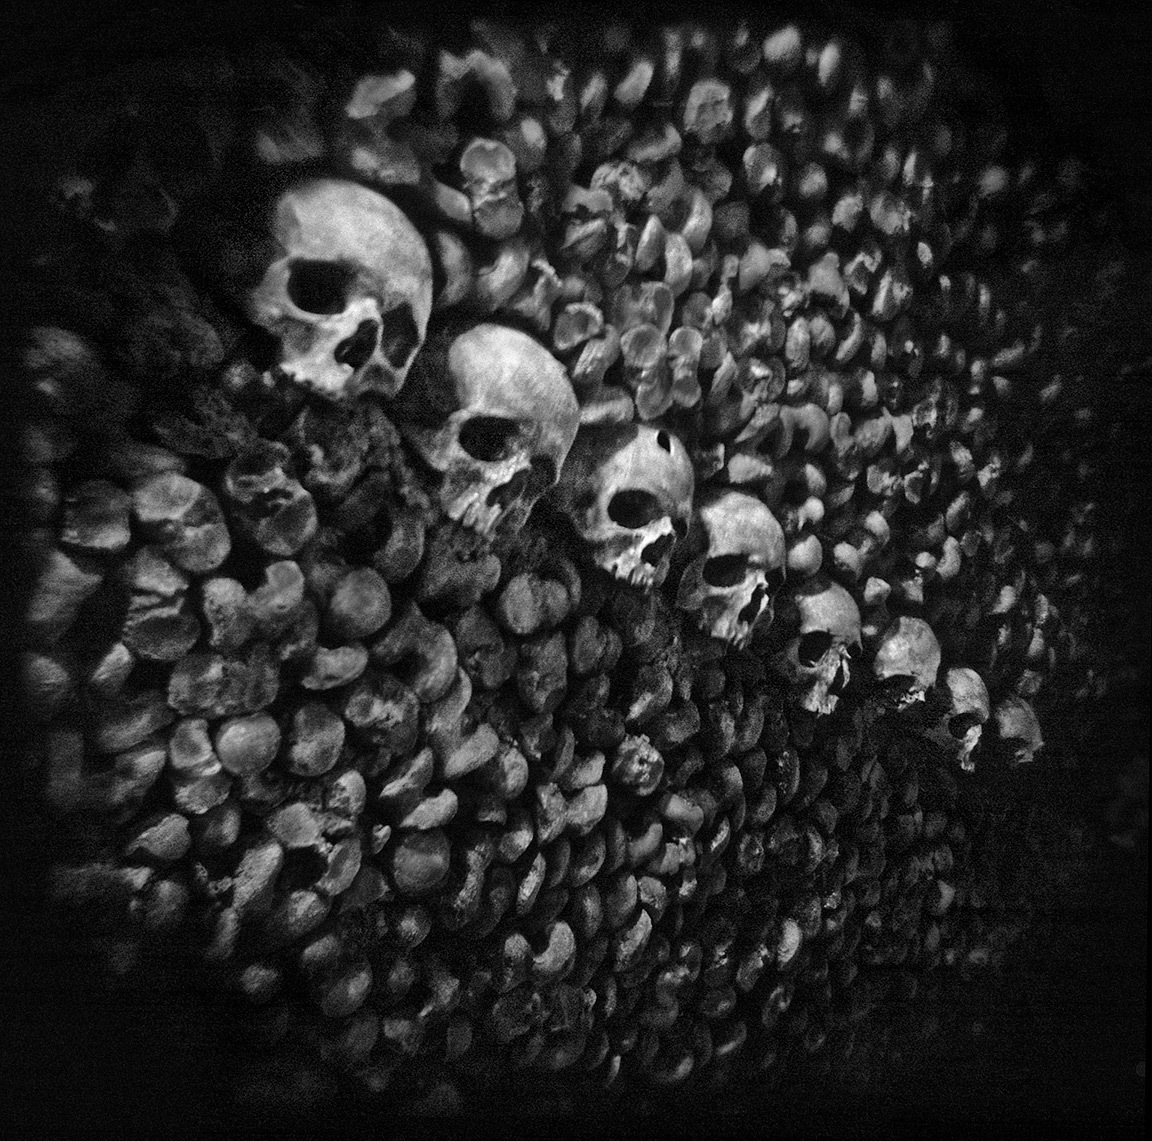 04-New Website-022113-CATACOMB-SKULLS-FINAL-B.jpg